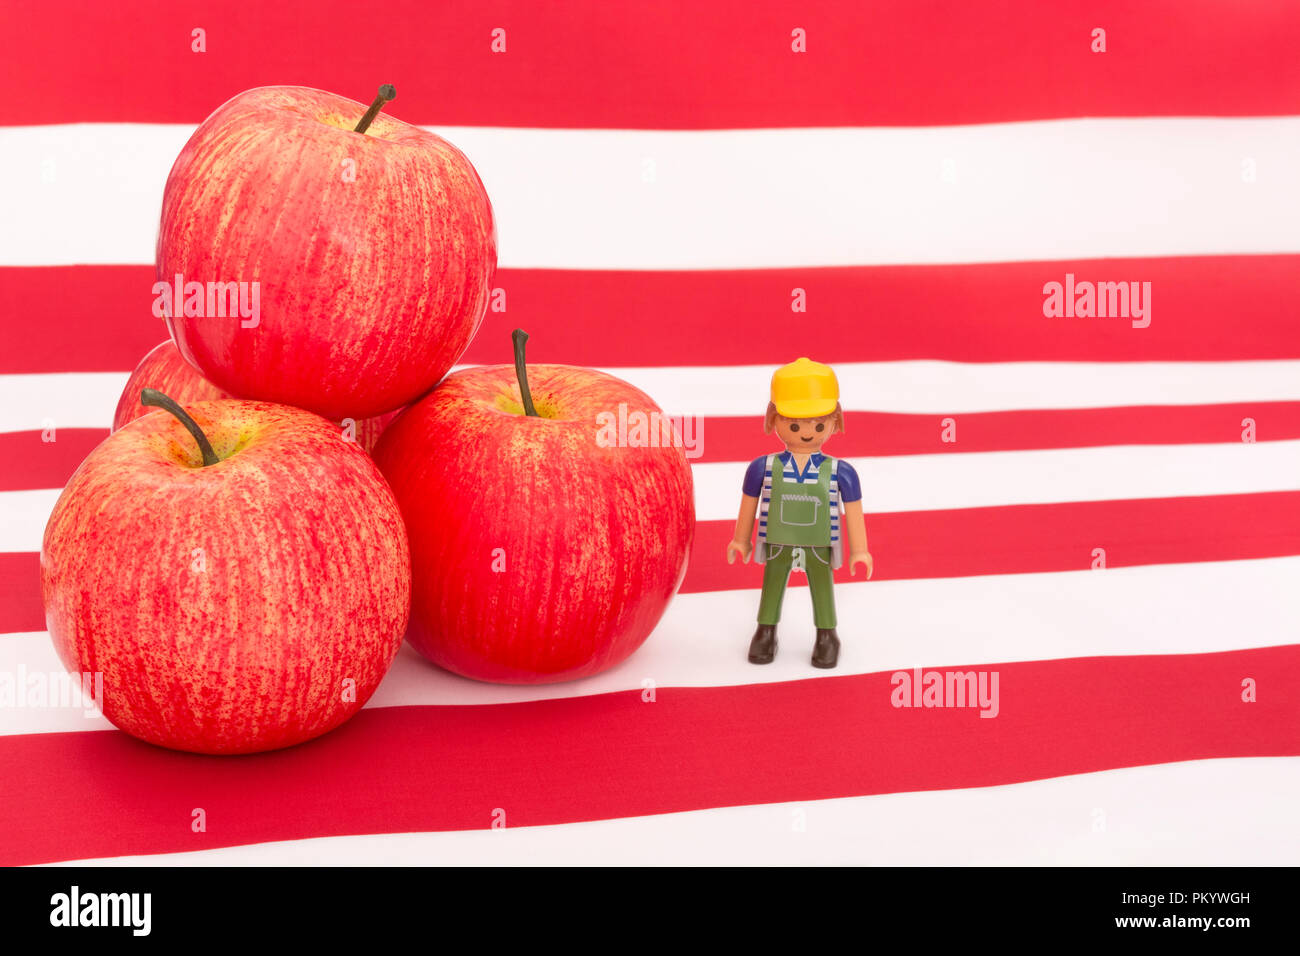 Red apples with U.S. American flag / Stars and Stripes - metaphor US apple industry, Chinese trade tariffs on imports of U.S. apples. Small toy farmer. - Stock Image